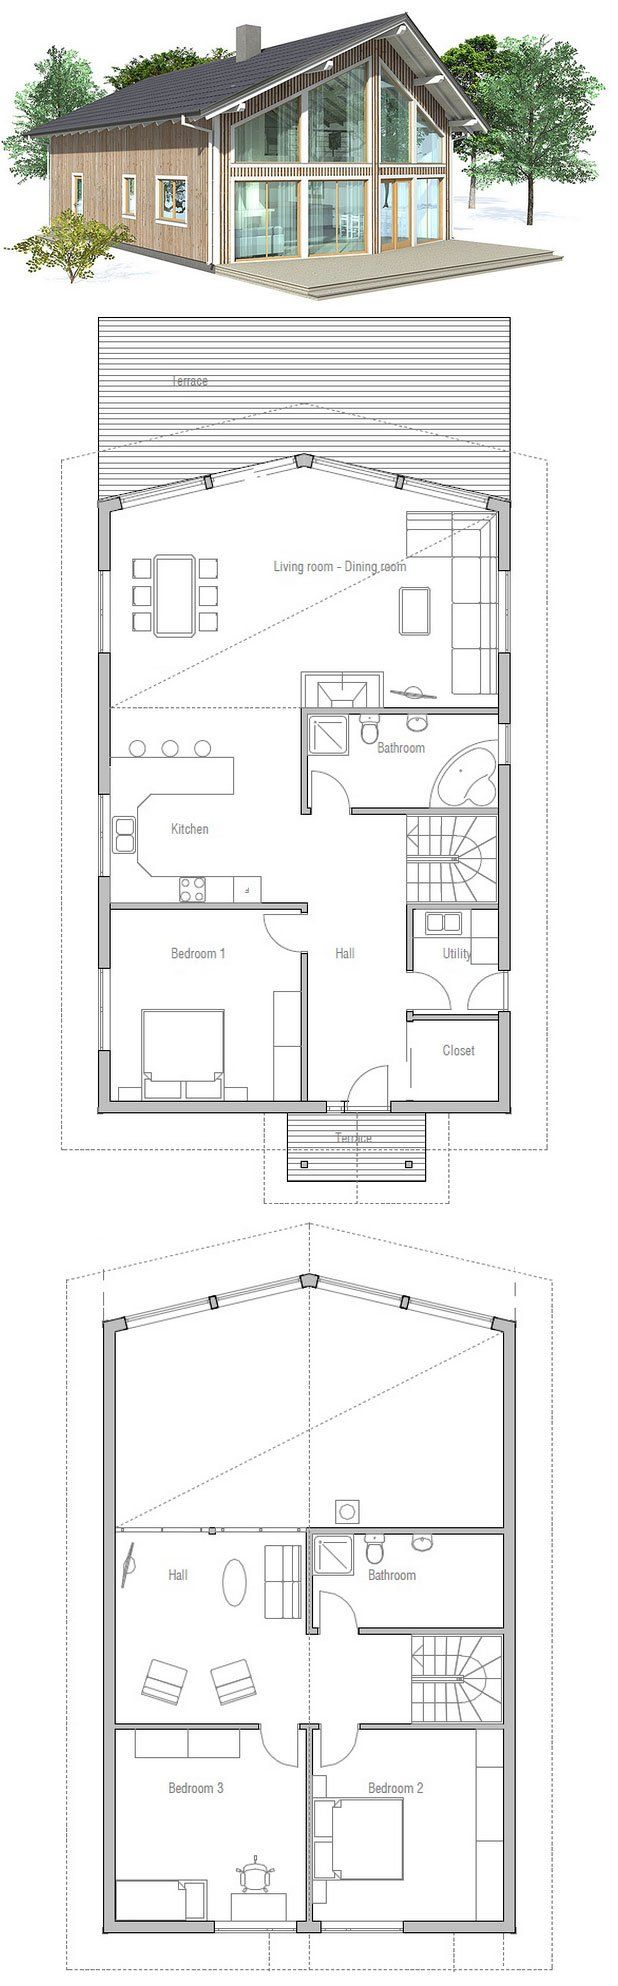 best 25 cabin plans with loft ideas on pinterest sims 4 houses small house plan to deep lot high vaulted ceiling in the living room tv area on the second floor three bedrooms no master bath and cut off kitchen